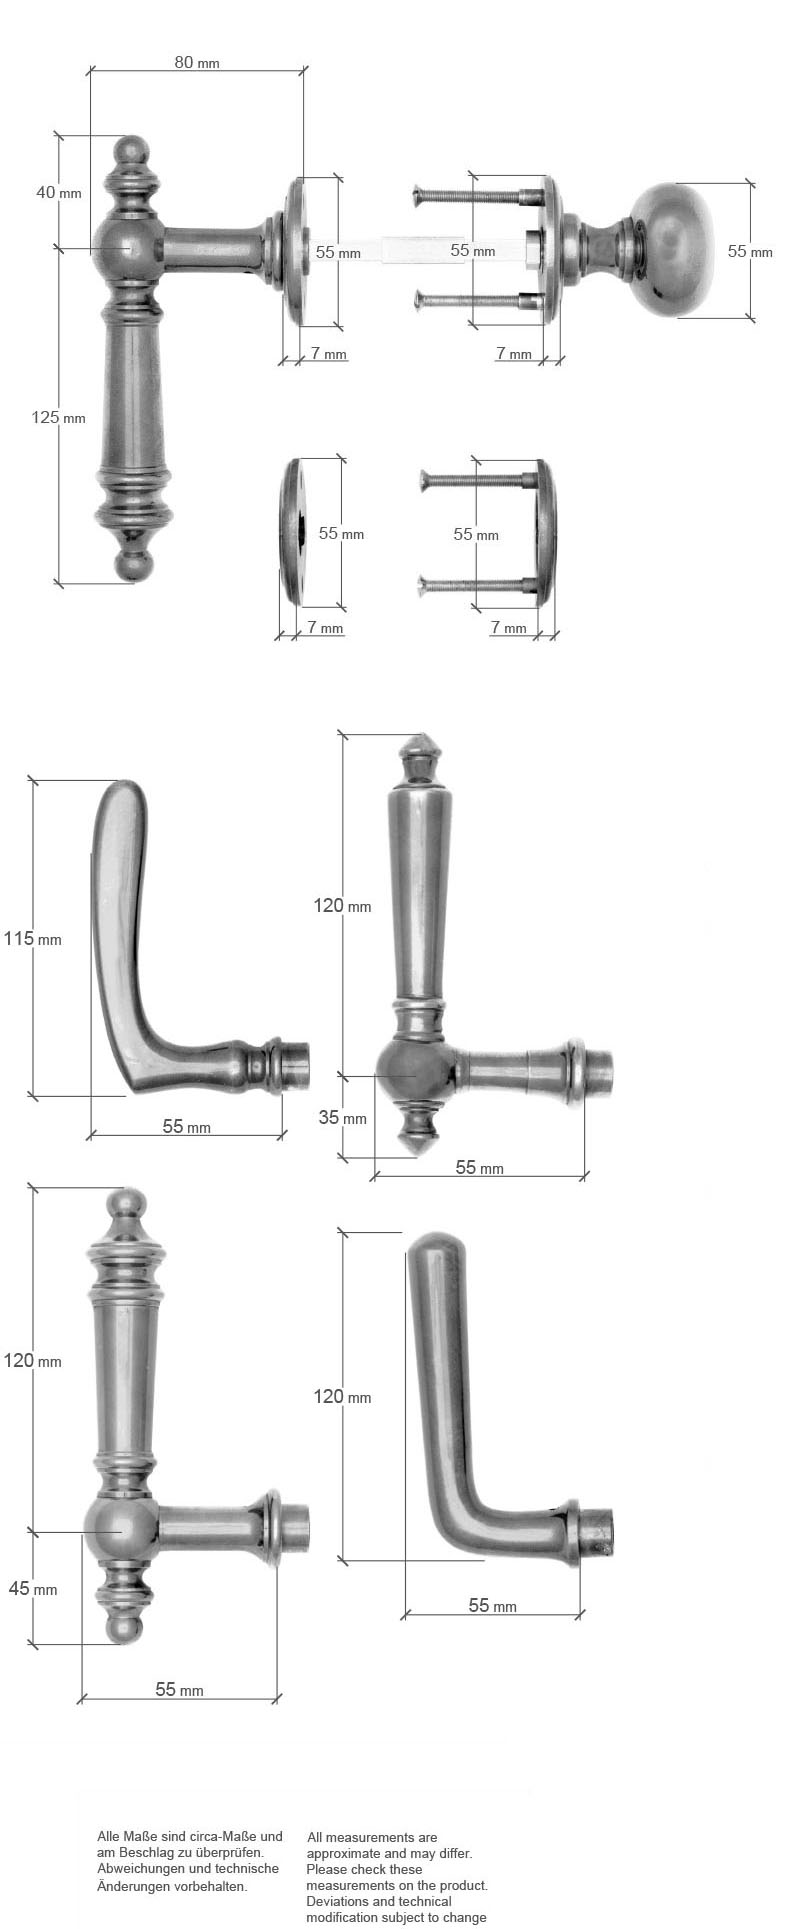 Scale drawing of: Rose door fittings with fixed knobon the exterior side and moving leveron the interior sidematerial:massive brassavailable with different finishesincluding:spindle and screwsdimensions:diameter roses 55 x 7 mmdiameter knob 50 mmlength handle 152 mm